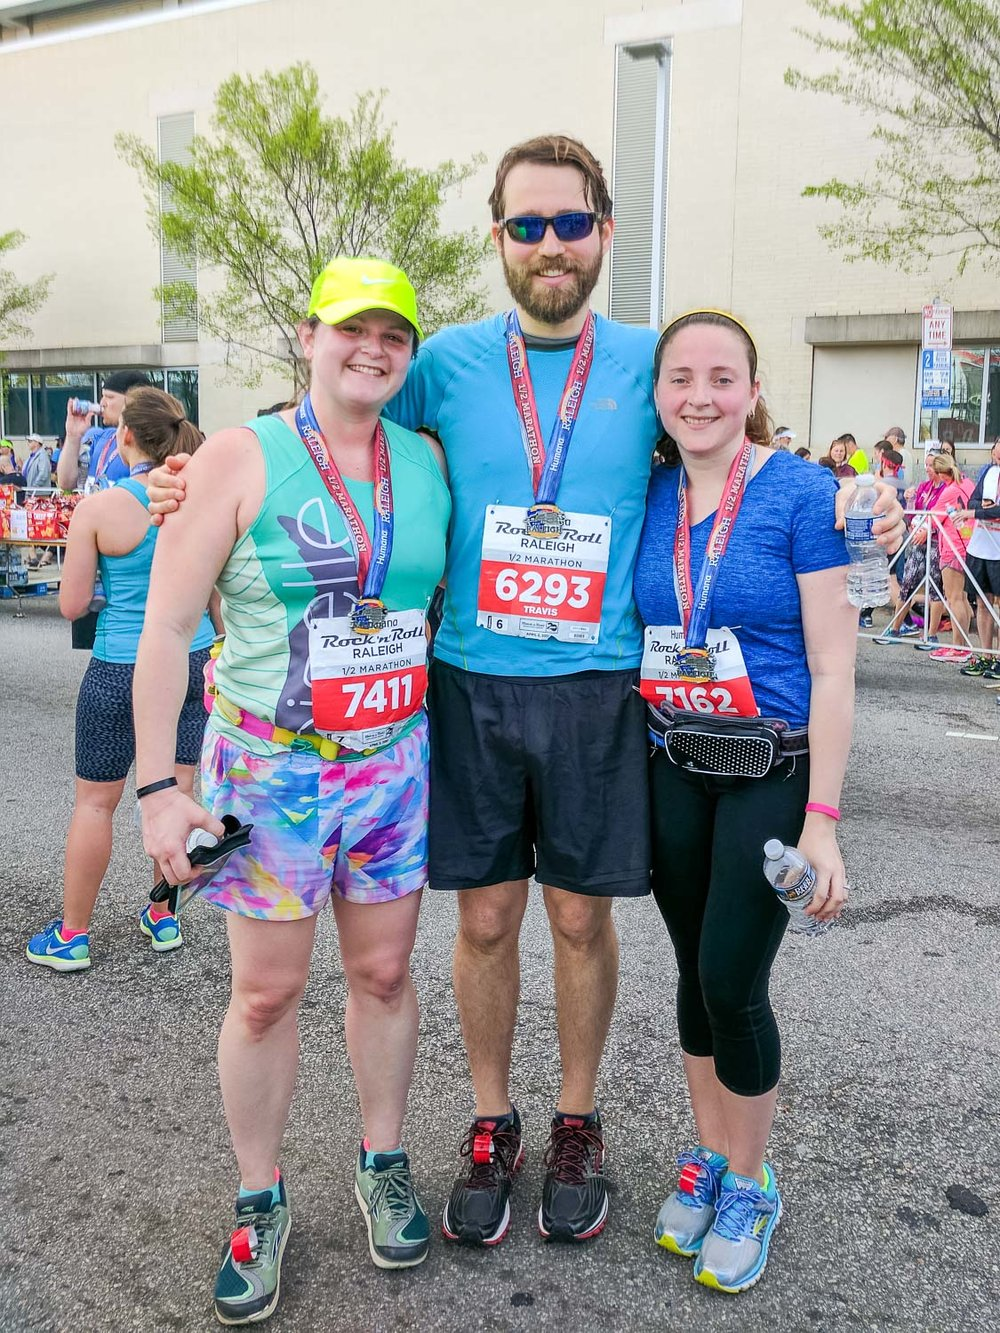 Finish line photos! Kristen is smiling because she PR'ed, congrats Kristen! Also, see how those race bibs are way too big and our running belts don't work with the bibs? Really now, tsk tsk.